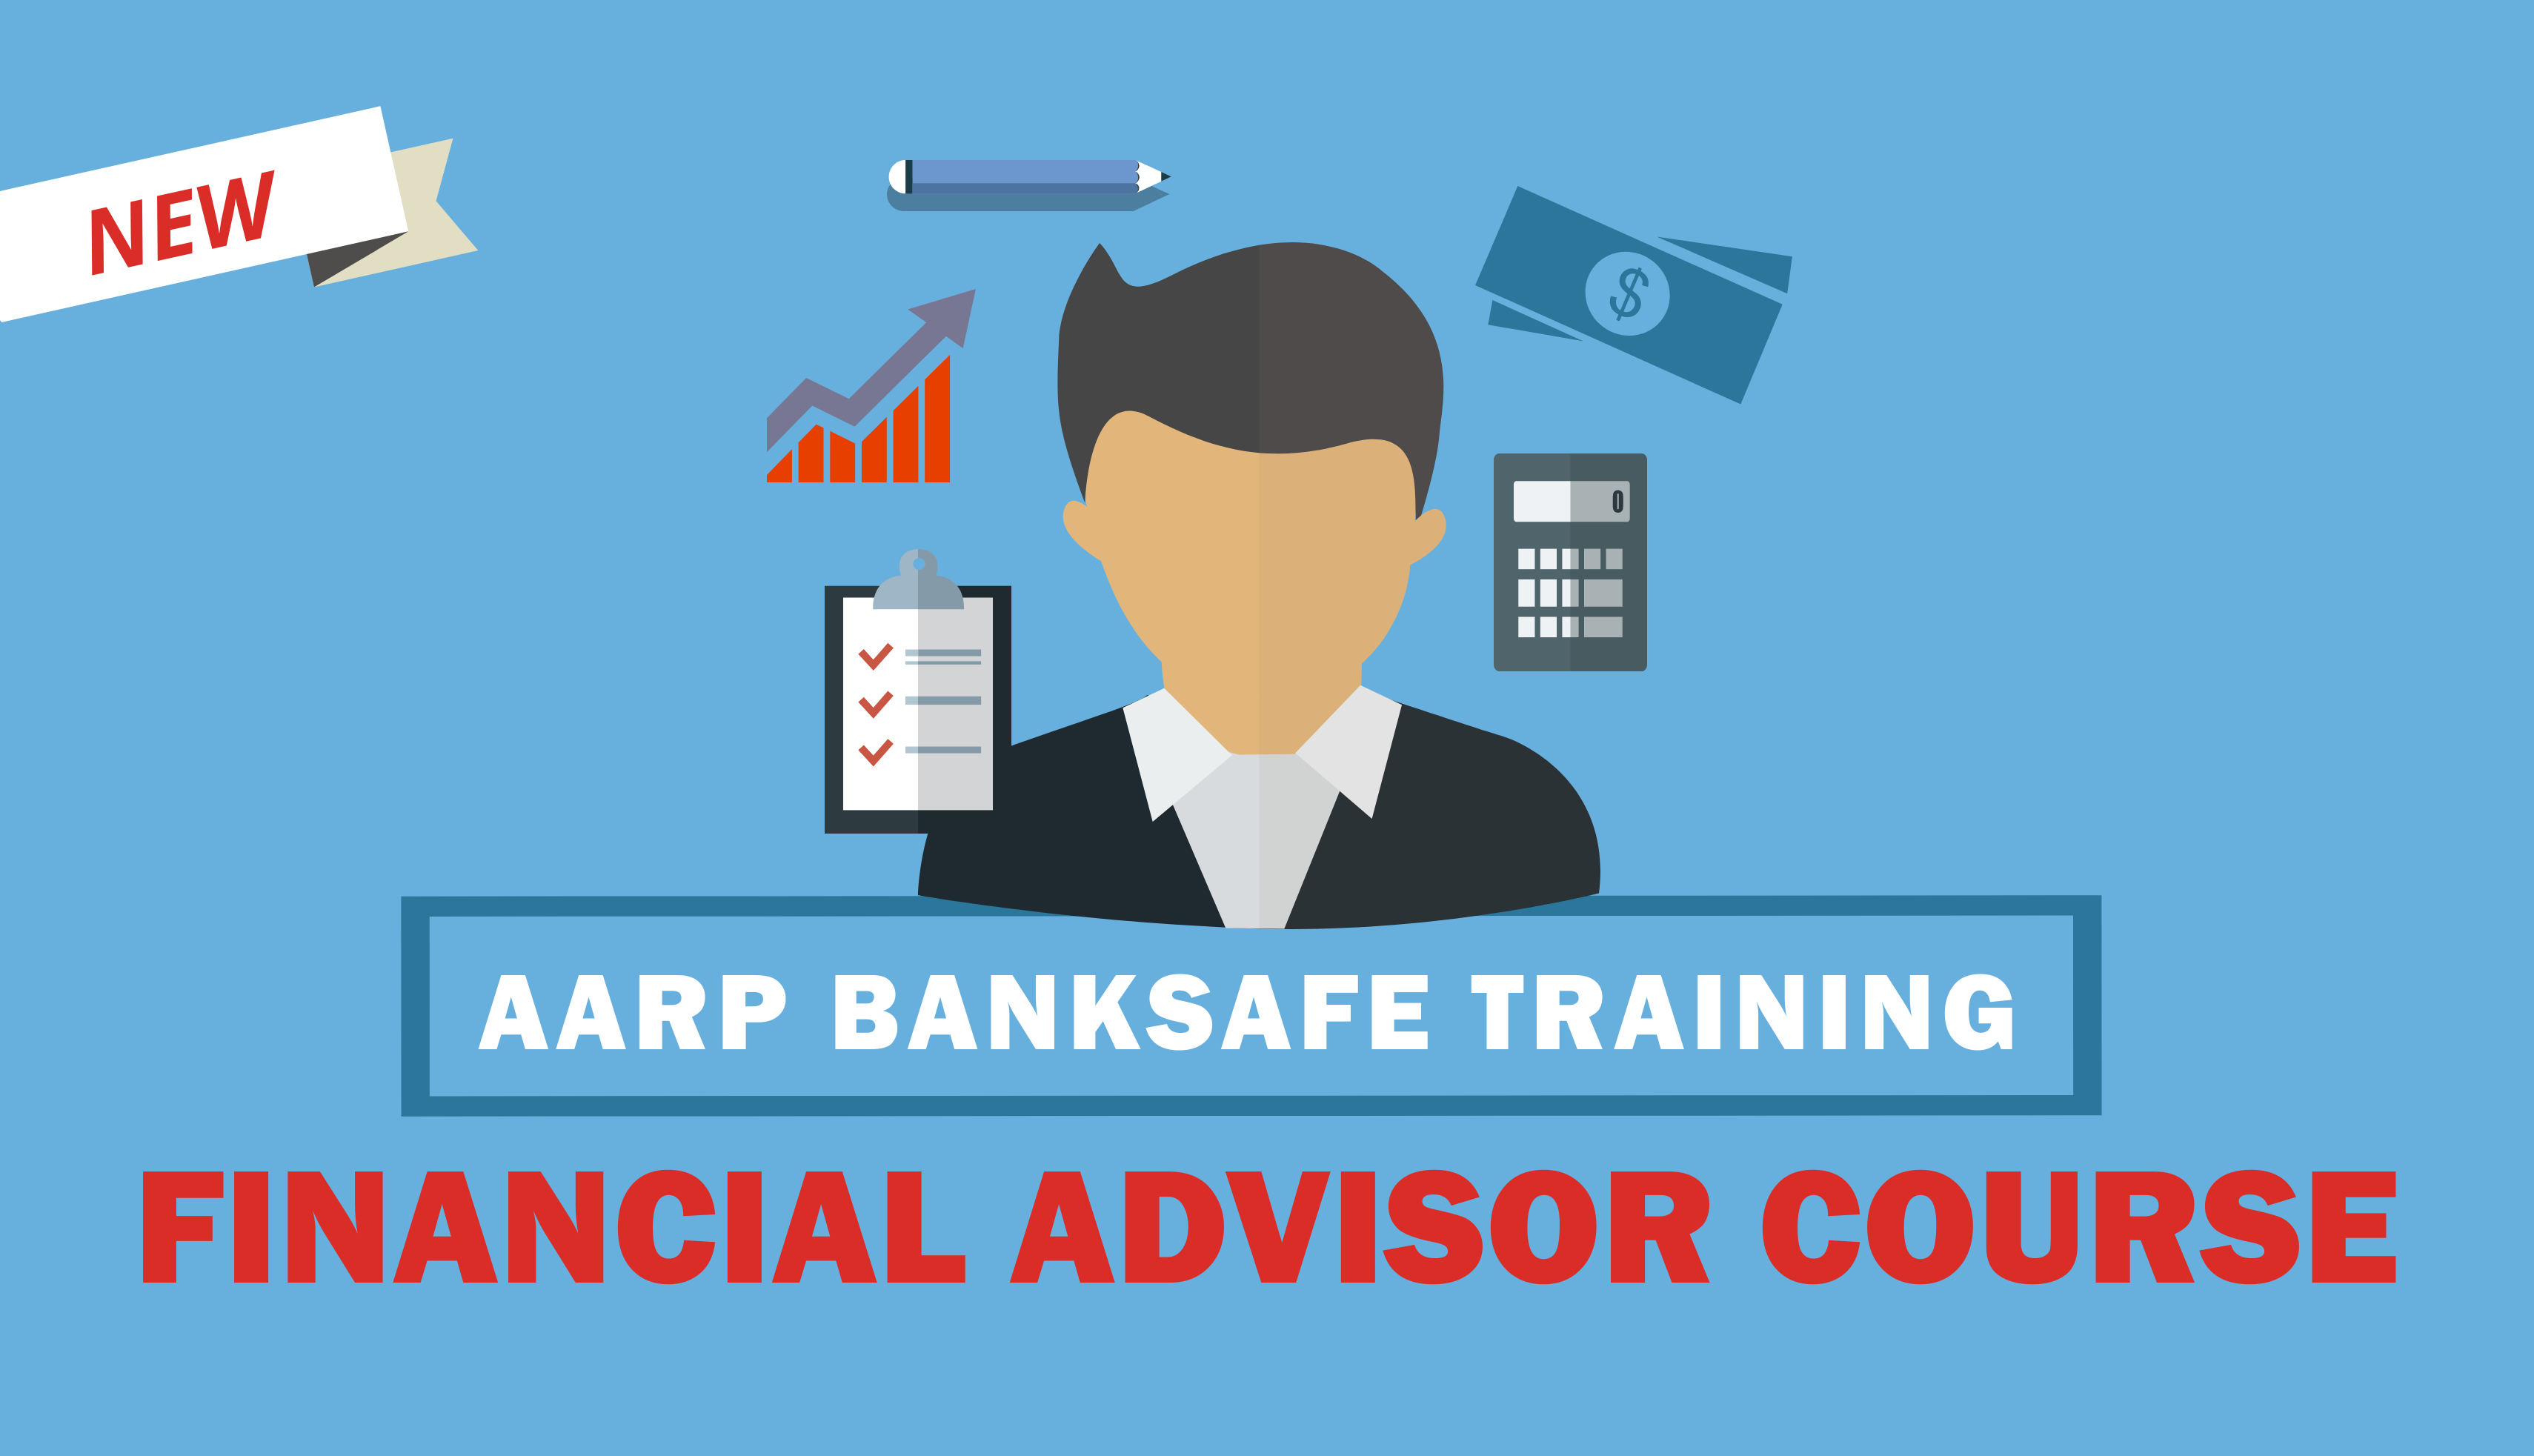 A A R P bank safe training financial advisor course